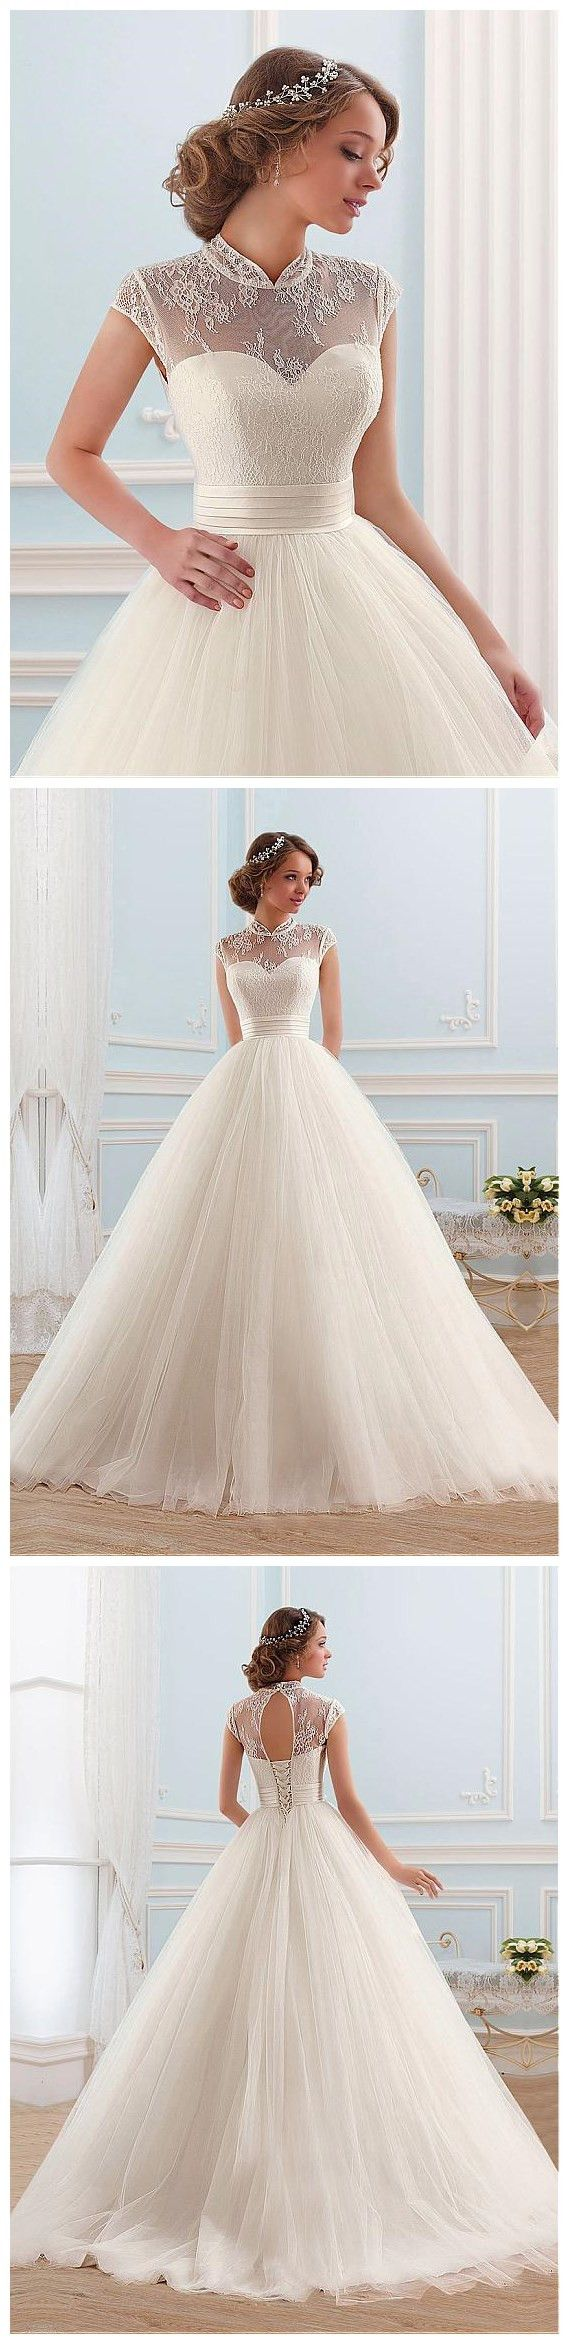 best 25+ wedding dress collar ideas on pinterest | high collar